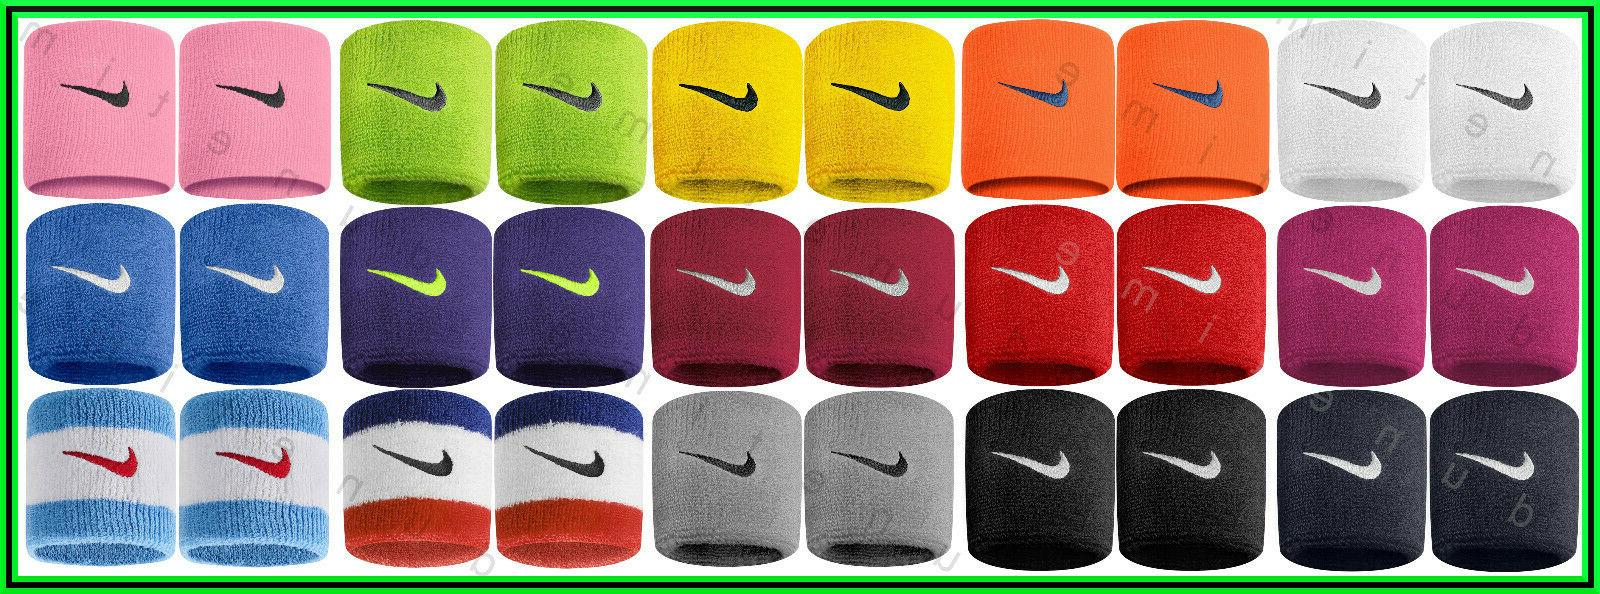 new swoosh wristbands 2 pack 3 singlewide